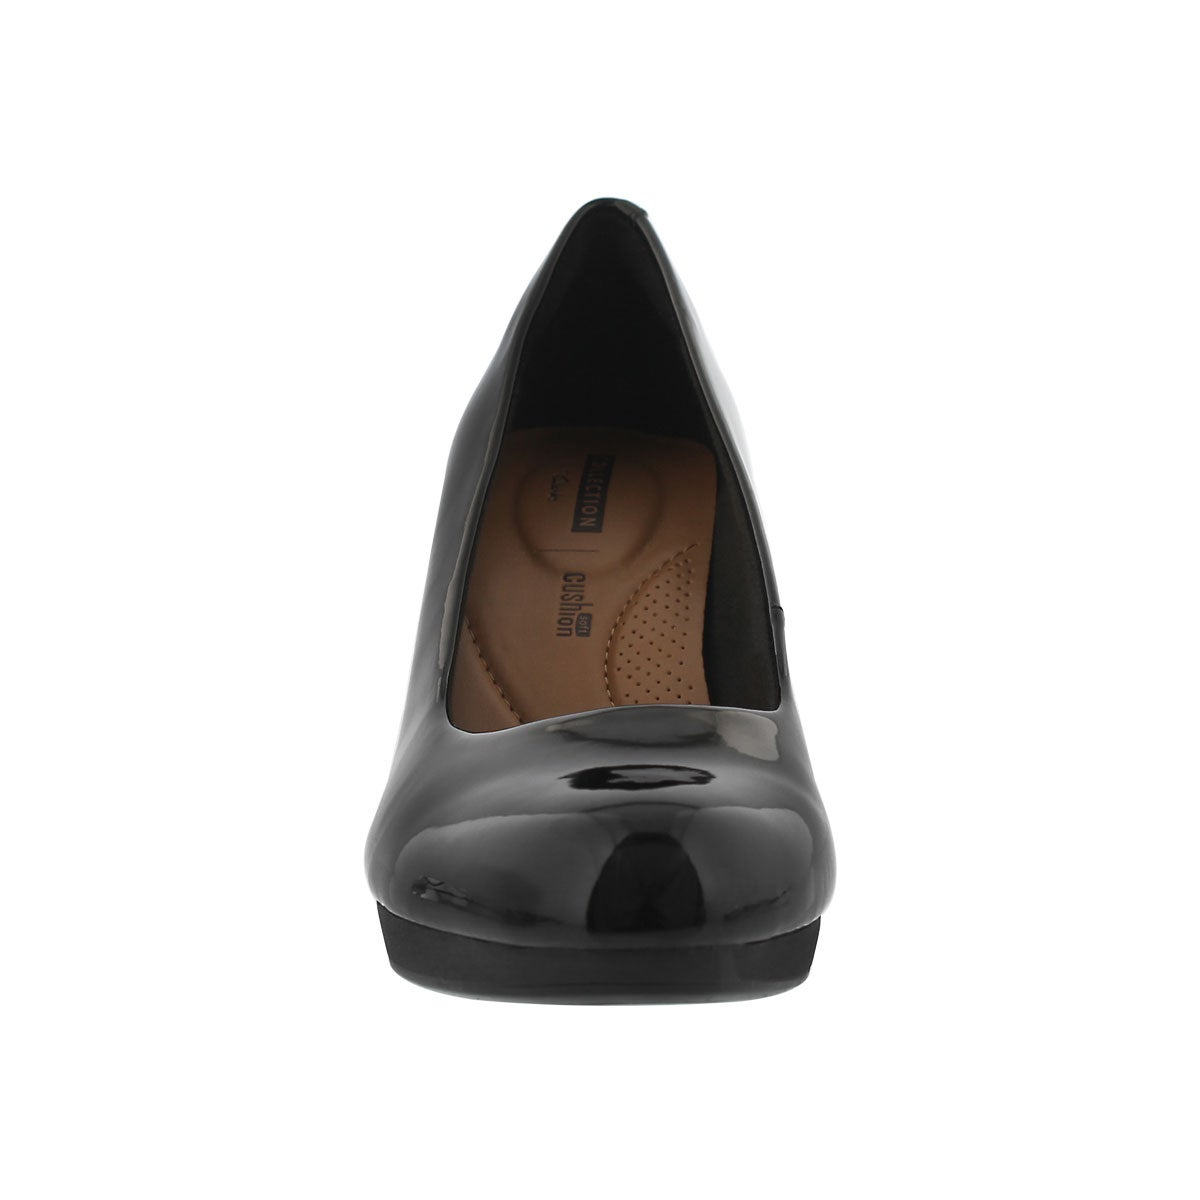 Lds Adriel Viola black patent dress heel